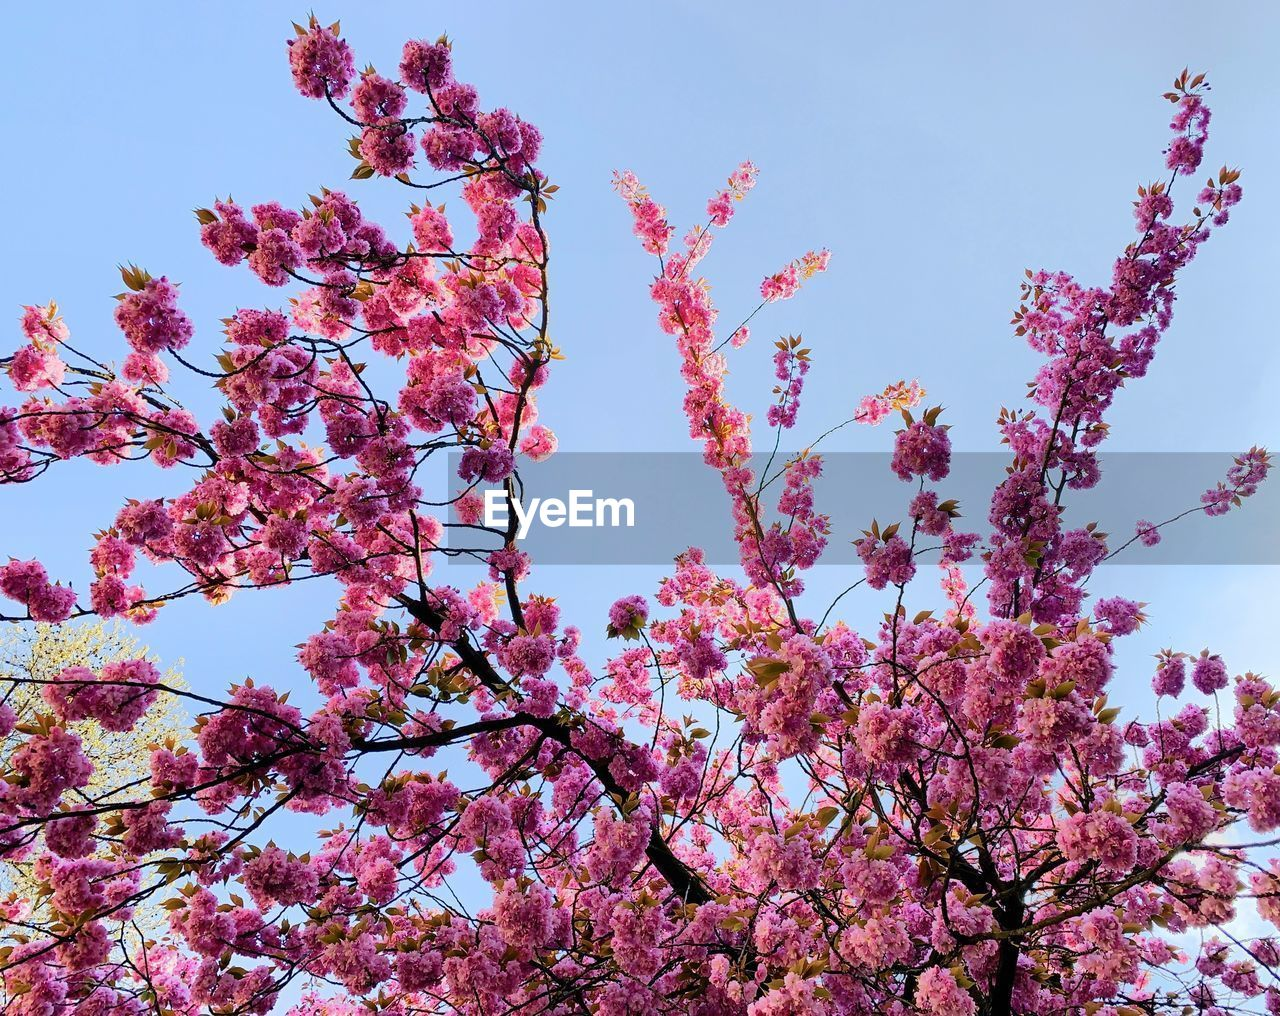 flower, plant, flowering plant, low angle view, sky, beauty in nature, pink color, growth, tree, blossom, fragility, freshness, springtime, branch, nature, day, vulnerability, no people, clear sky, botany, outdoors, cherry blossom, cherry tree, spring, plum blossom